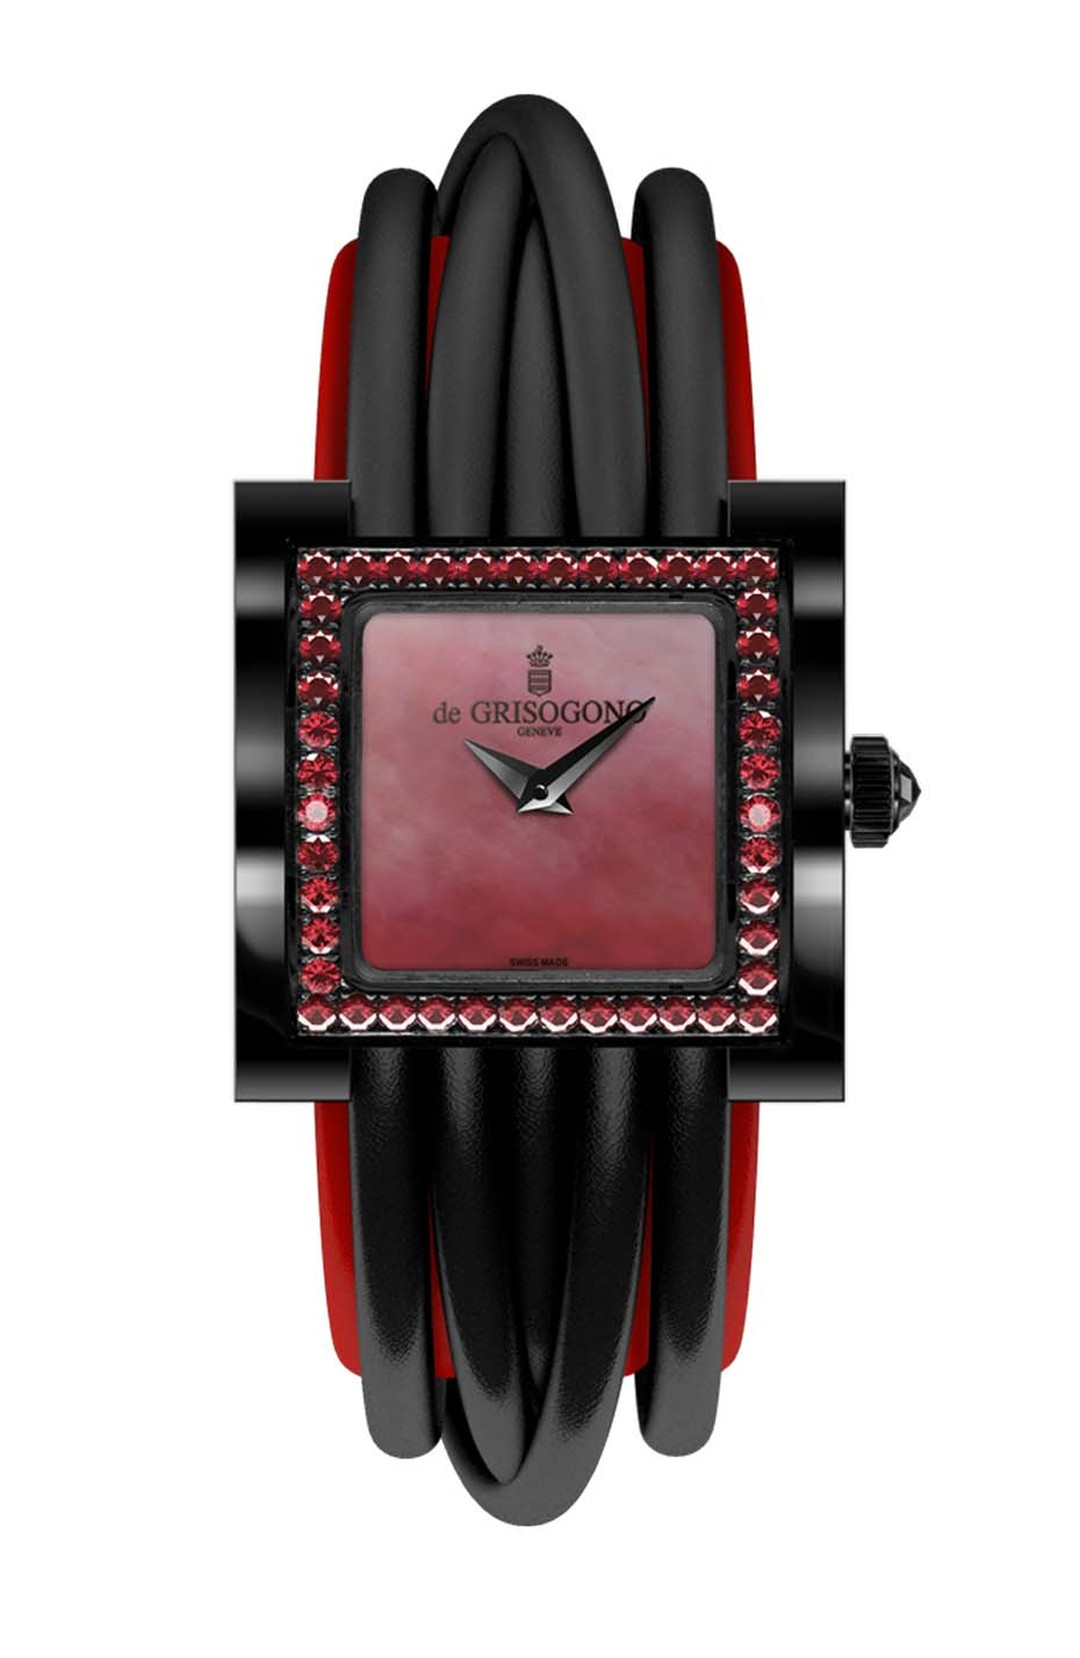 de GRISOGONO Allegra collection watch featuring a steel PVD coated case and a red mother-of-pearl dial with blackened gold dauphine hands and a bezel set with 44 red spinels